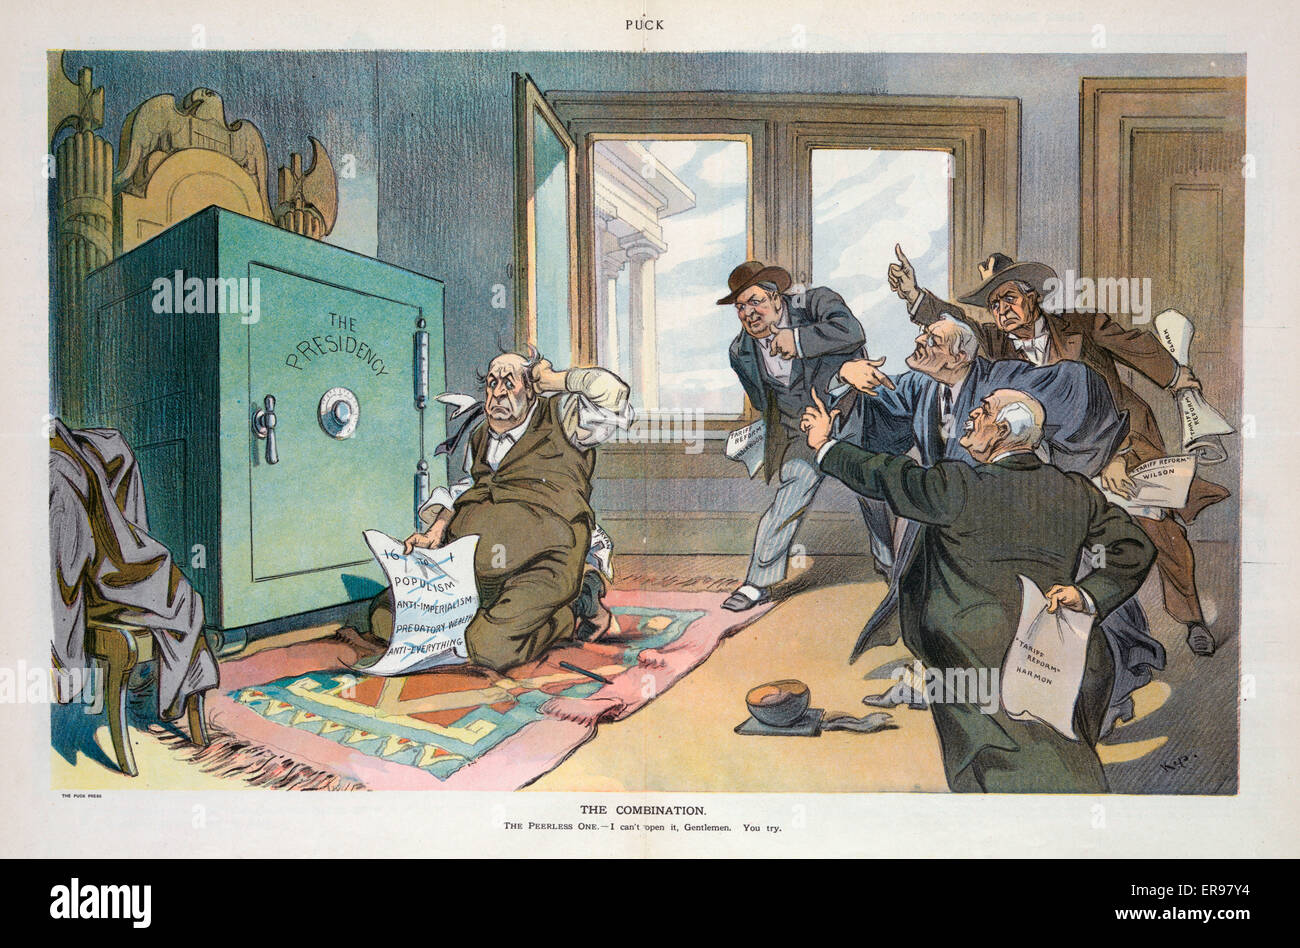 The combination. Illustration shows William Jennings Bryan trying to open a safe labeled The Presidency using a - Stock Image